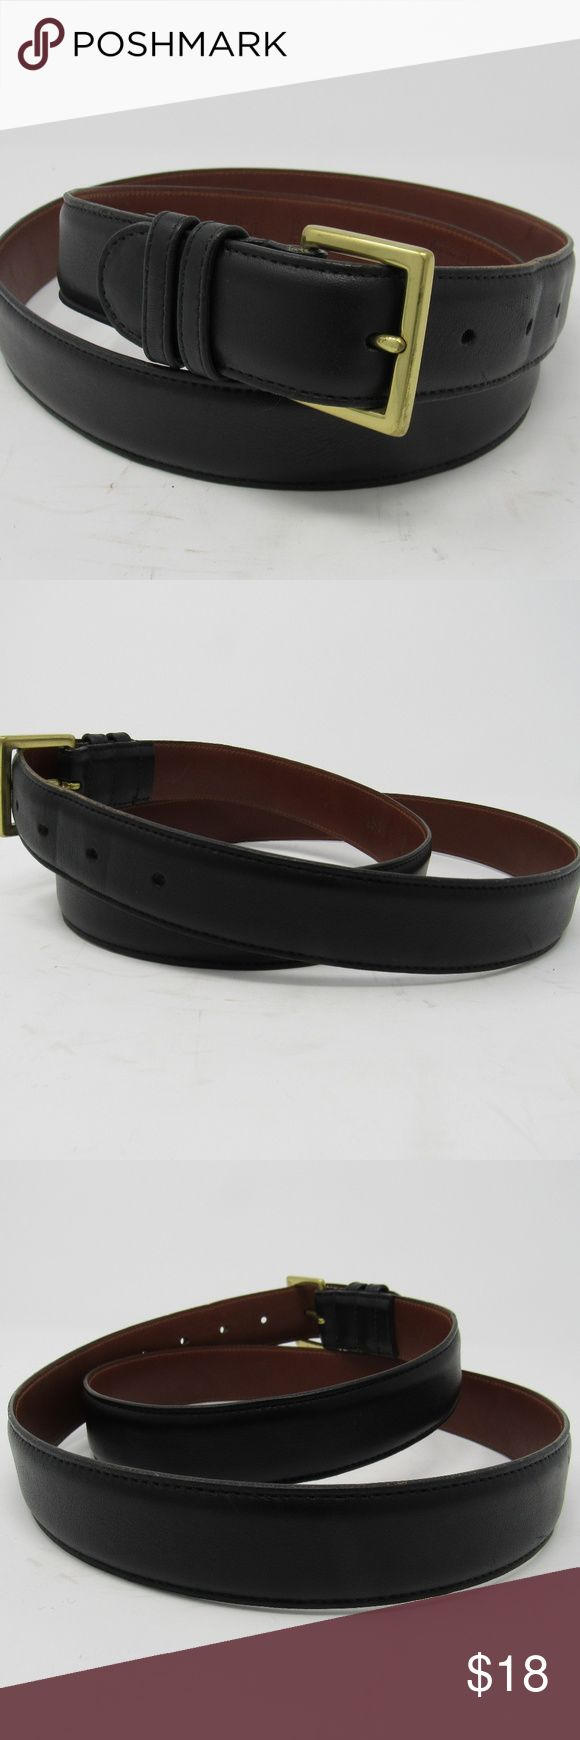 """🇺🇸 Coach belt mens size 42 Made in the USA Their item number 7600. Black handcrafted Coach belt made of full grain cowhide leather and gold tone buckle. It's in good shape with minimal scuffing and some creasing at the 3rd and 4th holes. The buckle has signs of wear only with a close inspection and primarily on the back side. Size 42, measuring 47 1/4"""" including its 1 1/4"""" buckle and is 1 1/4"""" wide. Please use the pictures to give it a once over.  INV-H13-180108 Coach Accessories Belts"""